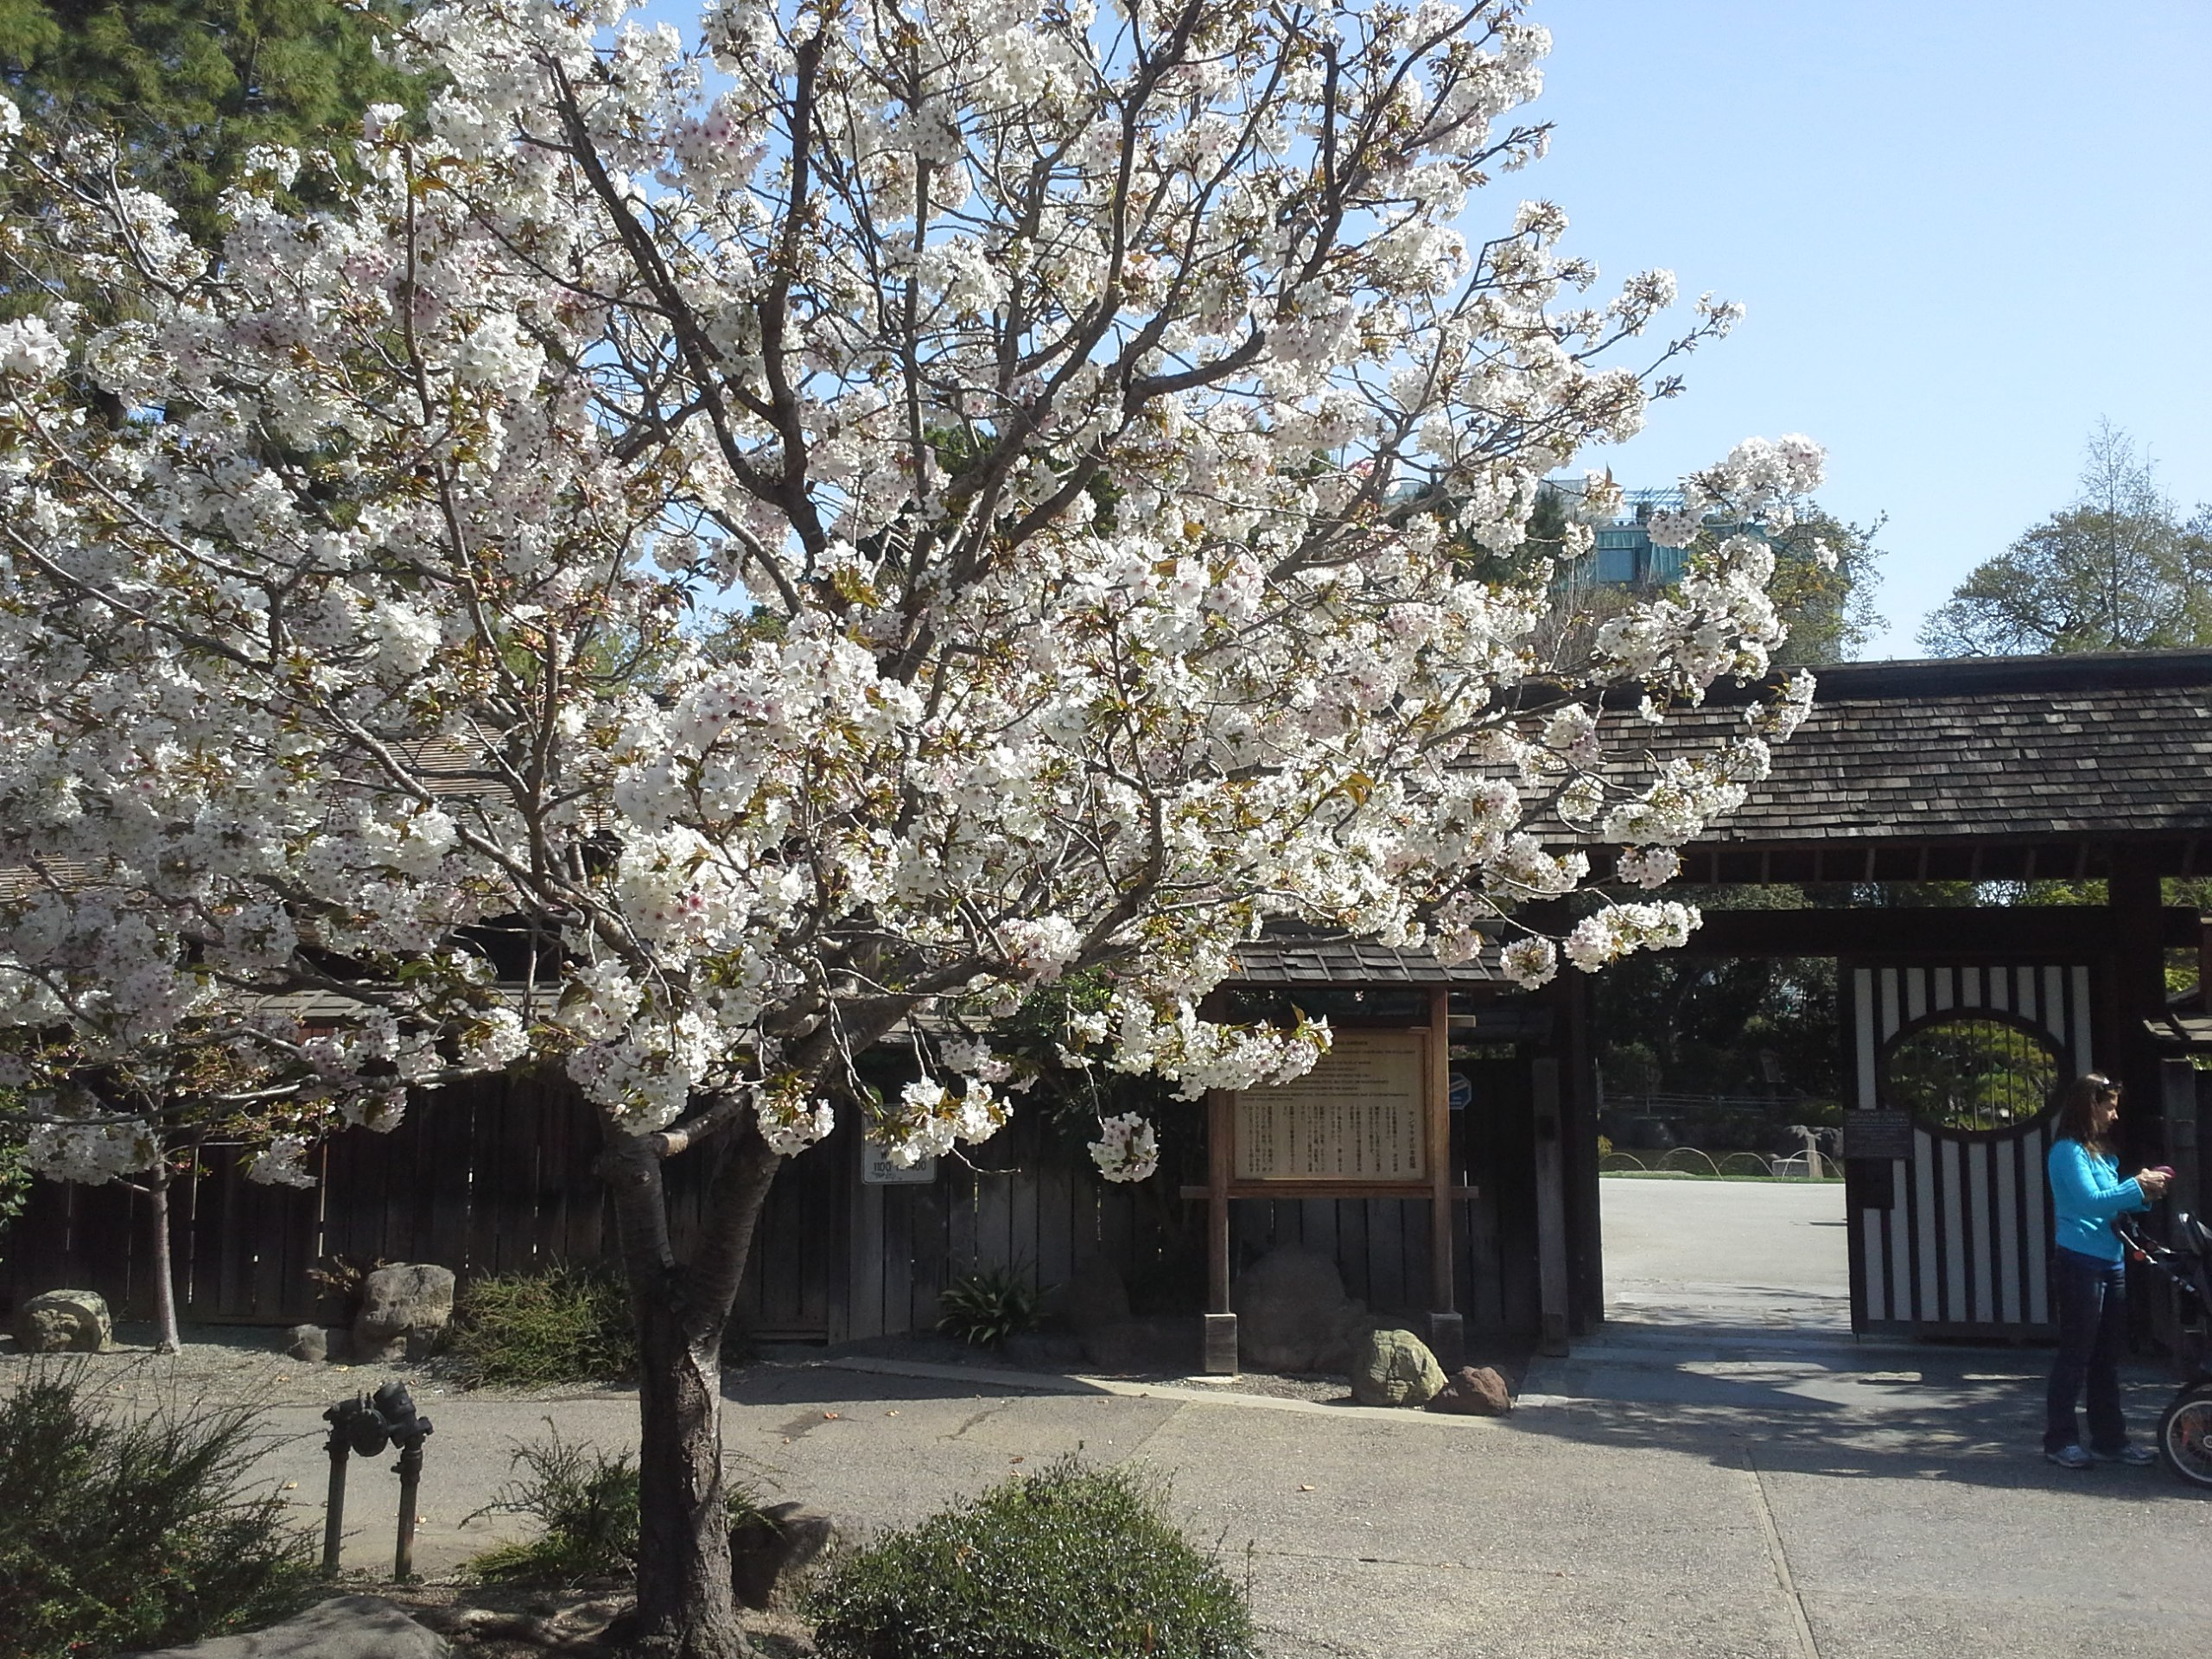 Fullsize Of Snow Fountain Weeping Cherry